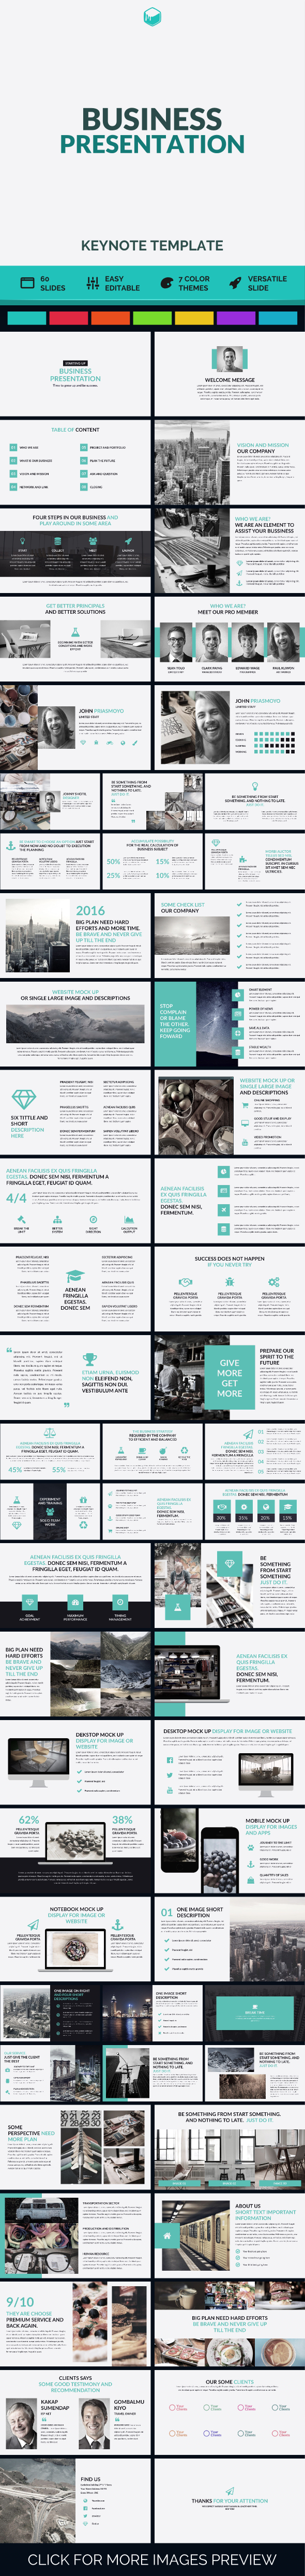 Business Presentation - Keynote Template - Business Keynote Templates